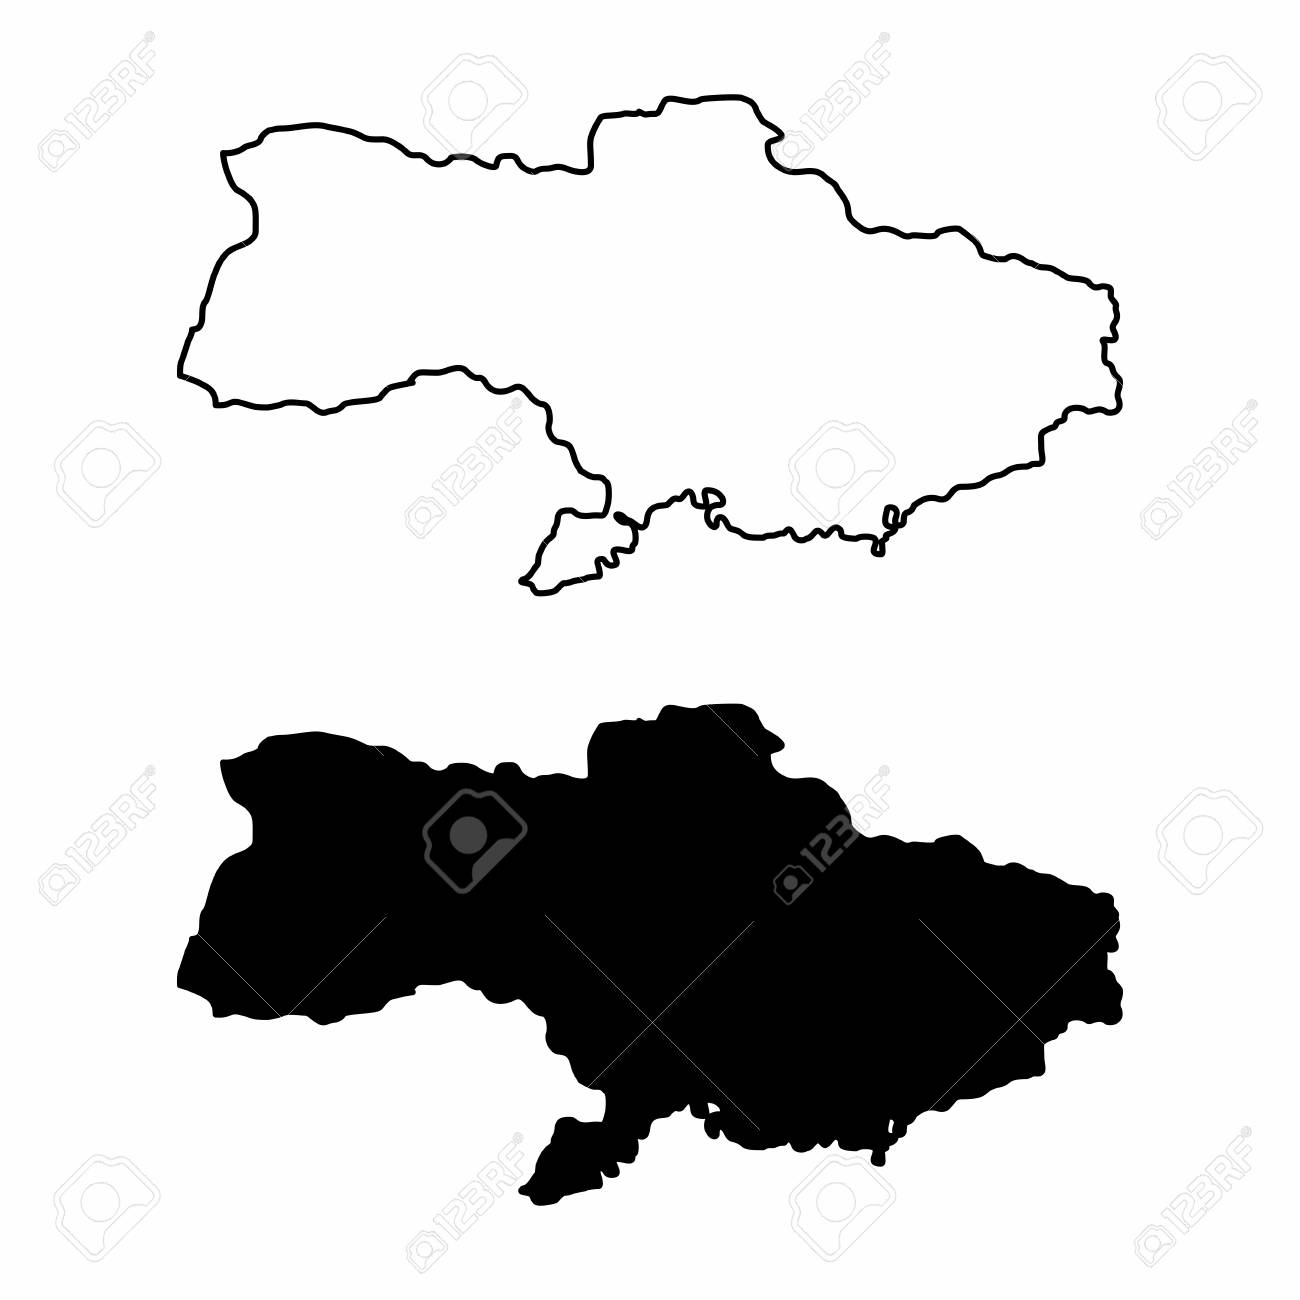 Simplified maps of Ukraine. Black and white outlines..